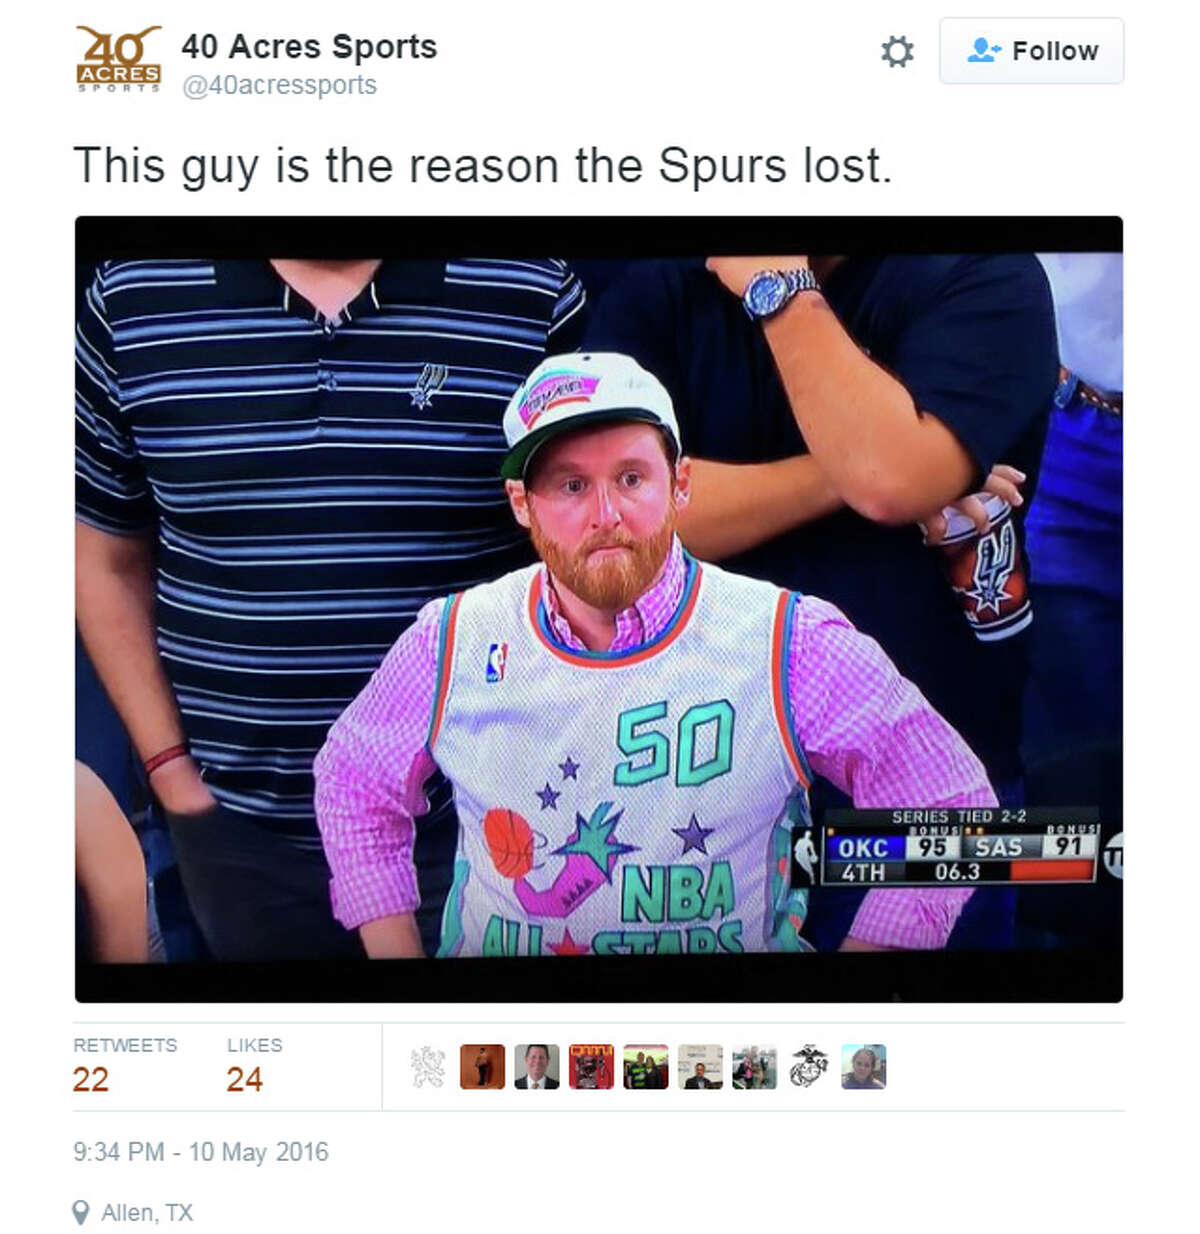 It's this guy's fault Maybe we should just stick to wearing silver and black.Tweet: